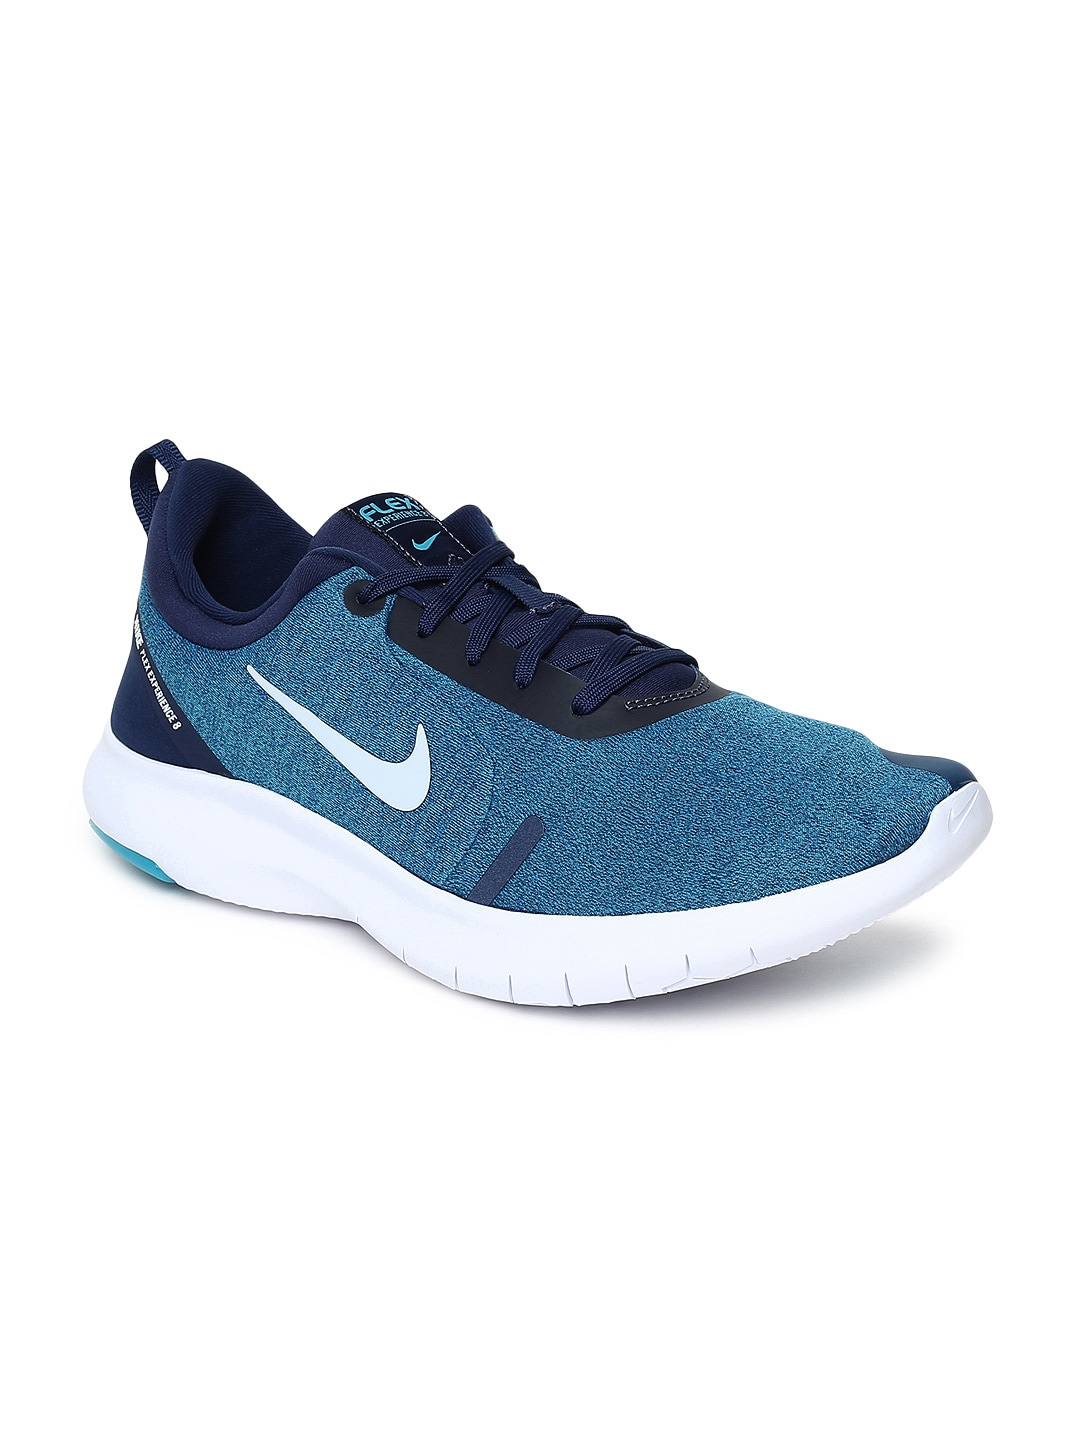 2ef8d789e4c73 Nike Running Shoes - Buy Nike Running Shoes Online